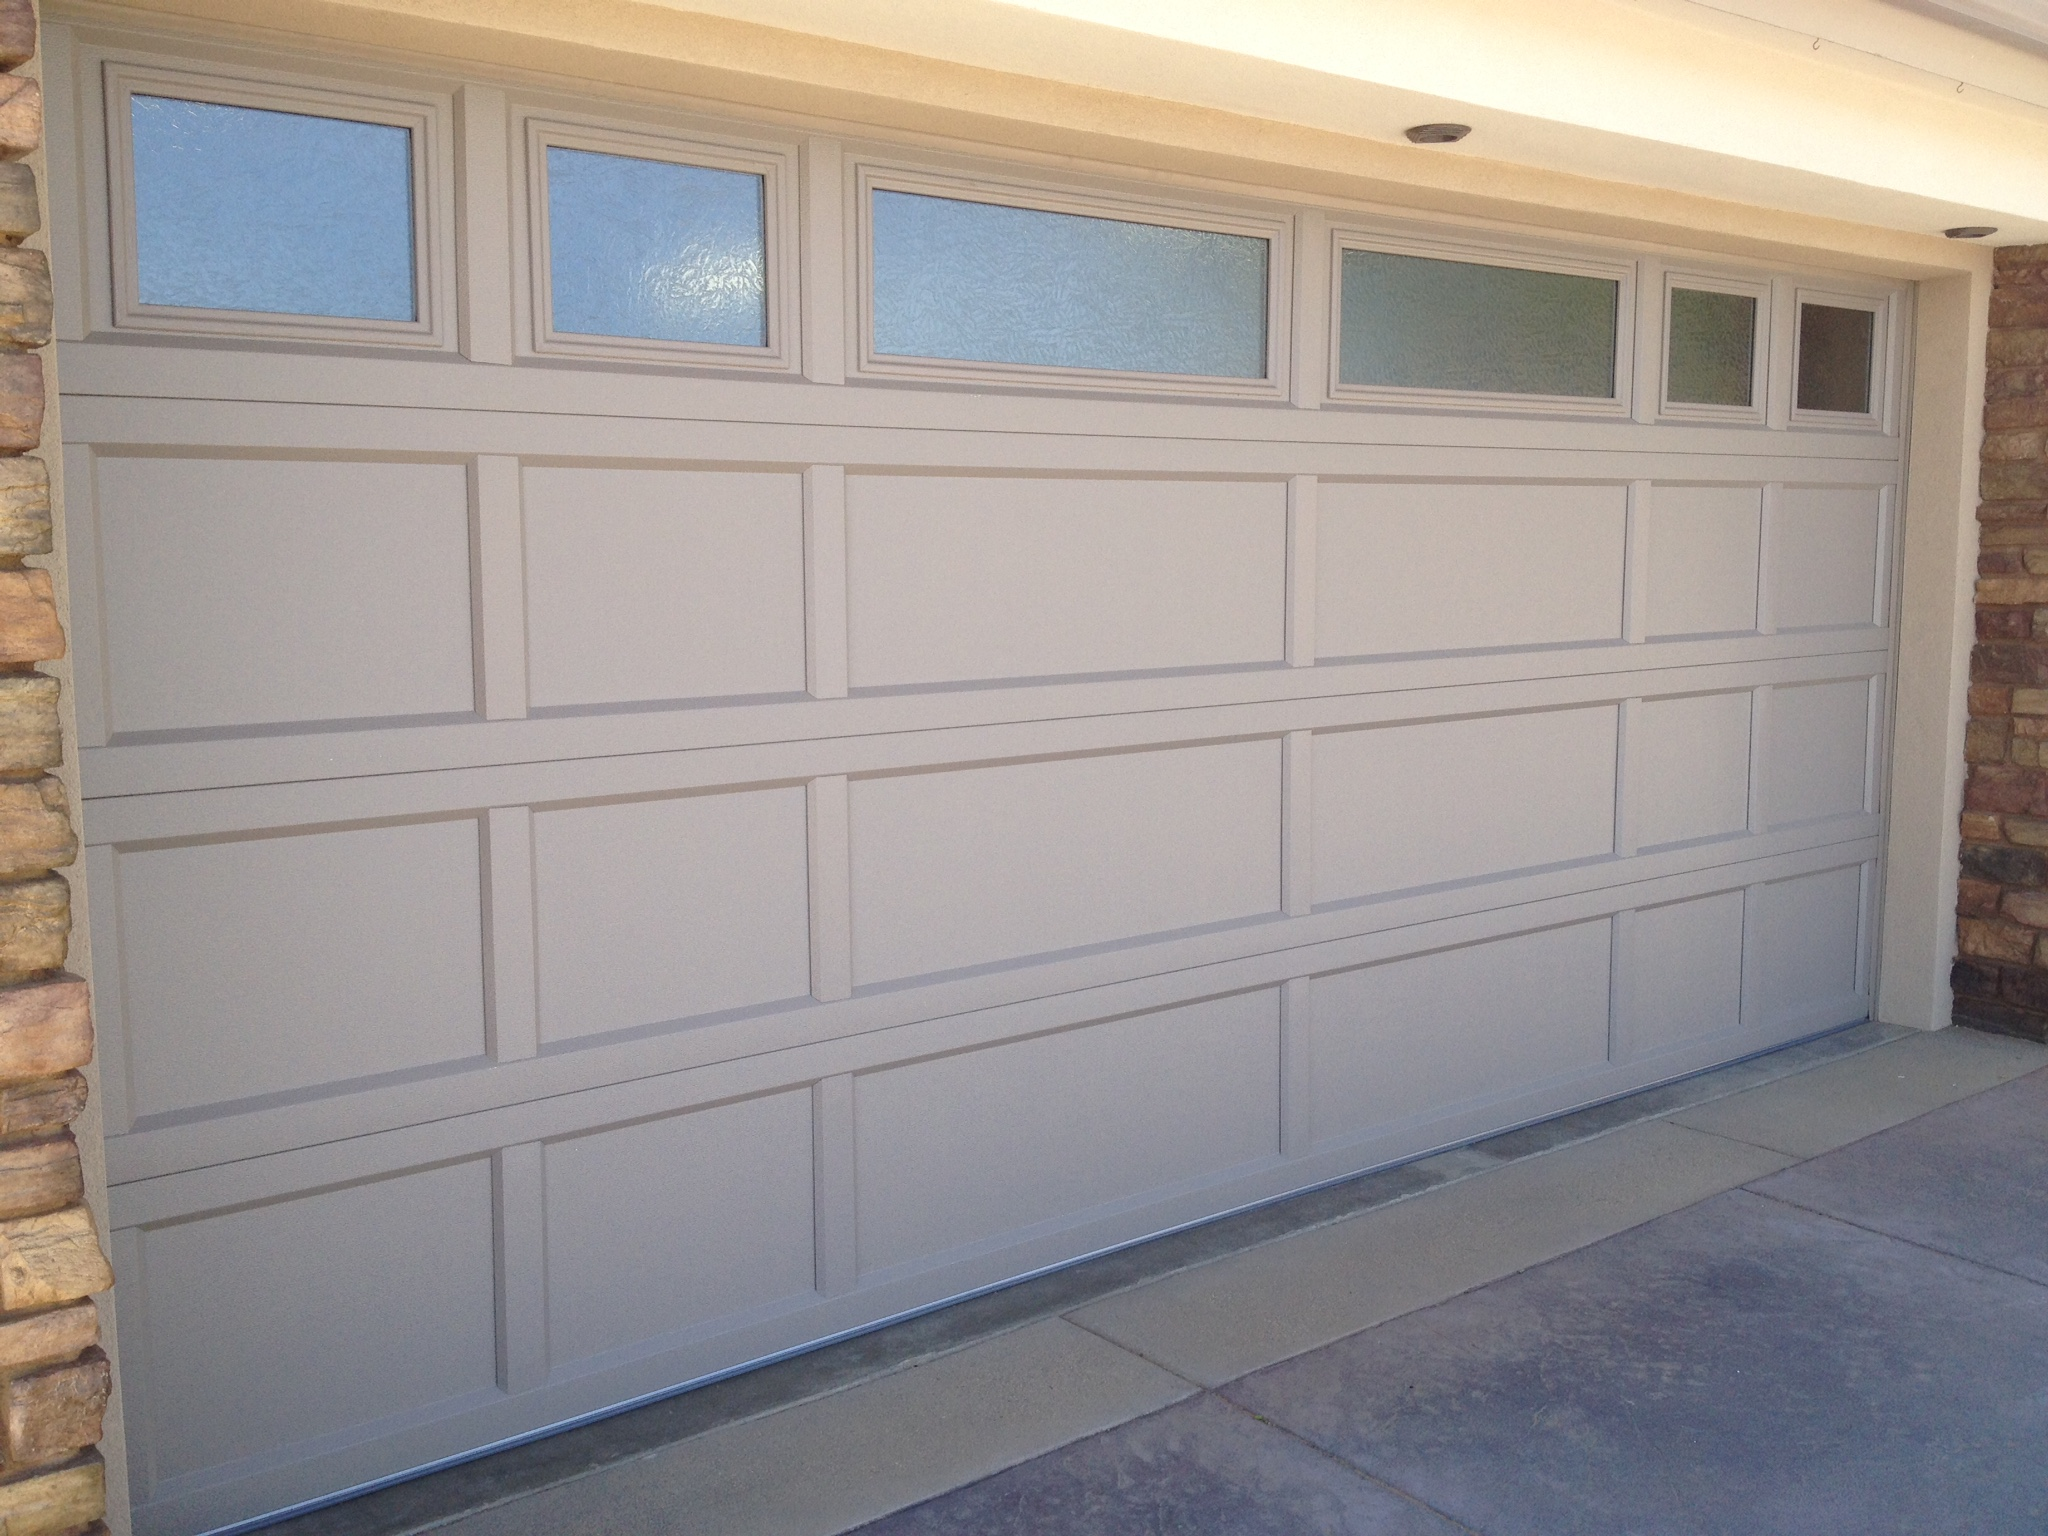 Doorworks Overhead Garage Door Repair Co Coupons Near Me In Lancaster